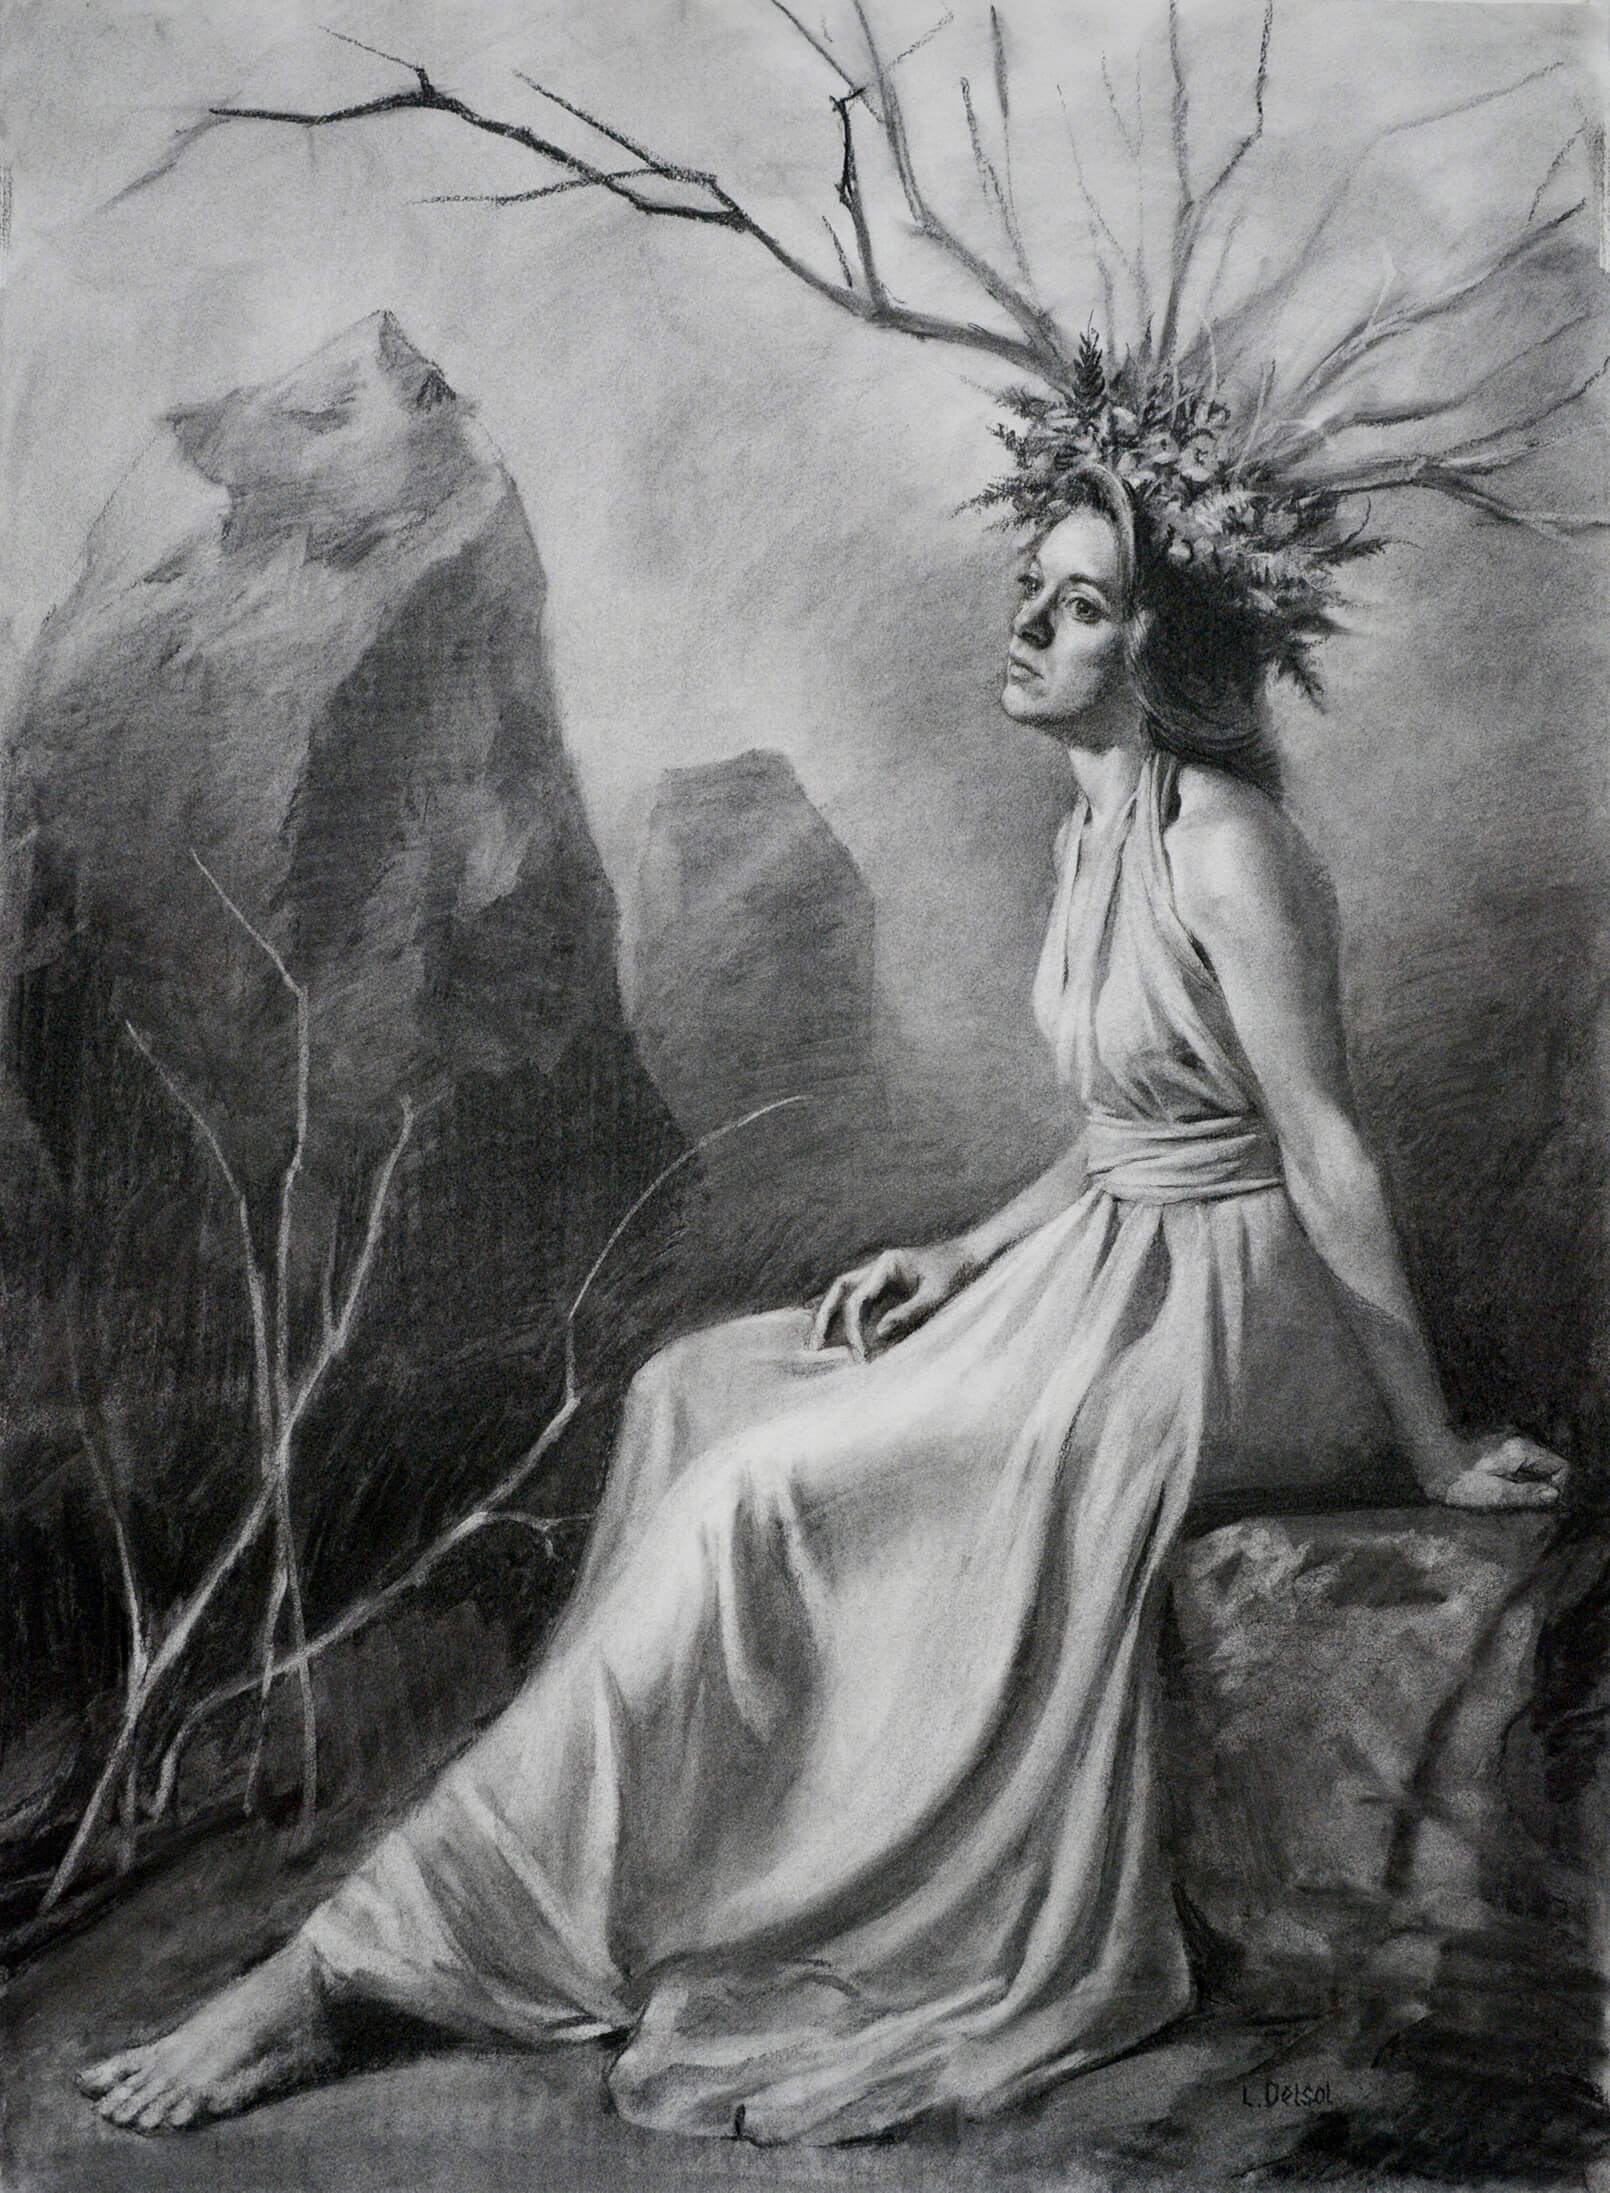 Charcoal drawing of a young woman with a stick head dress sitting on a stone near two other stones